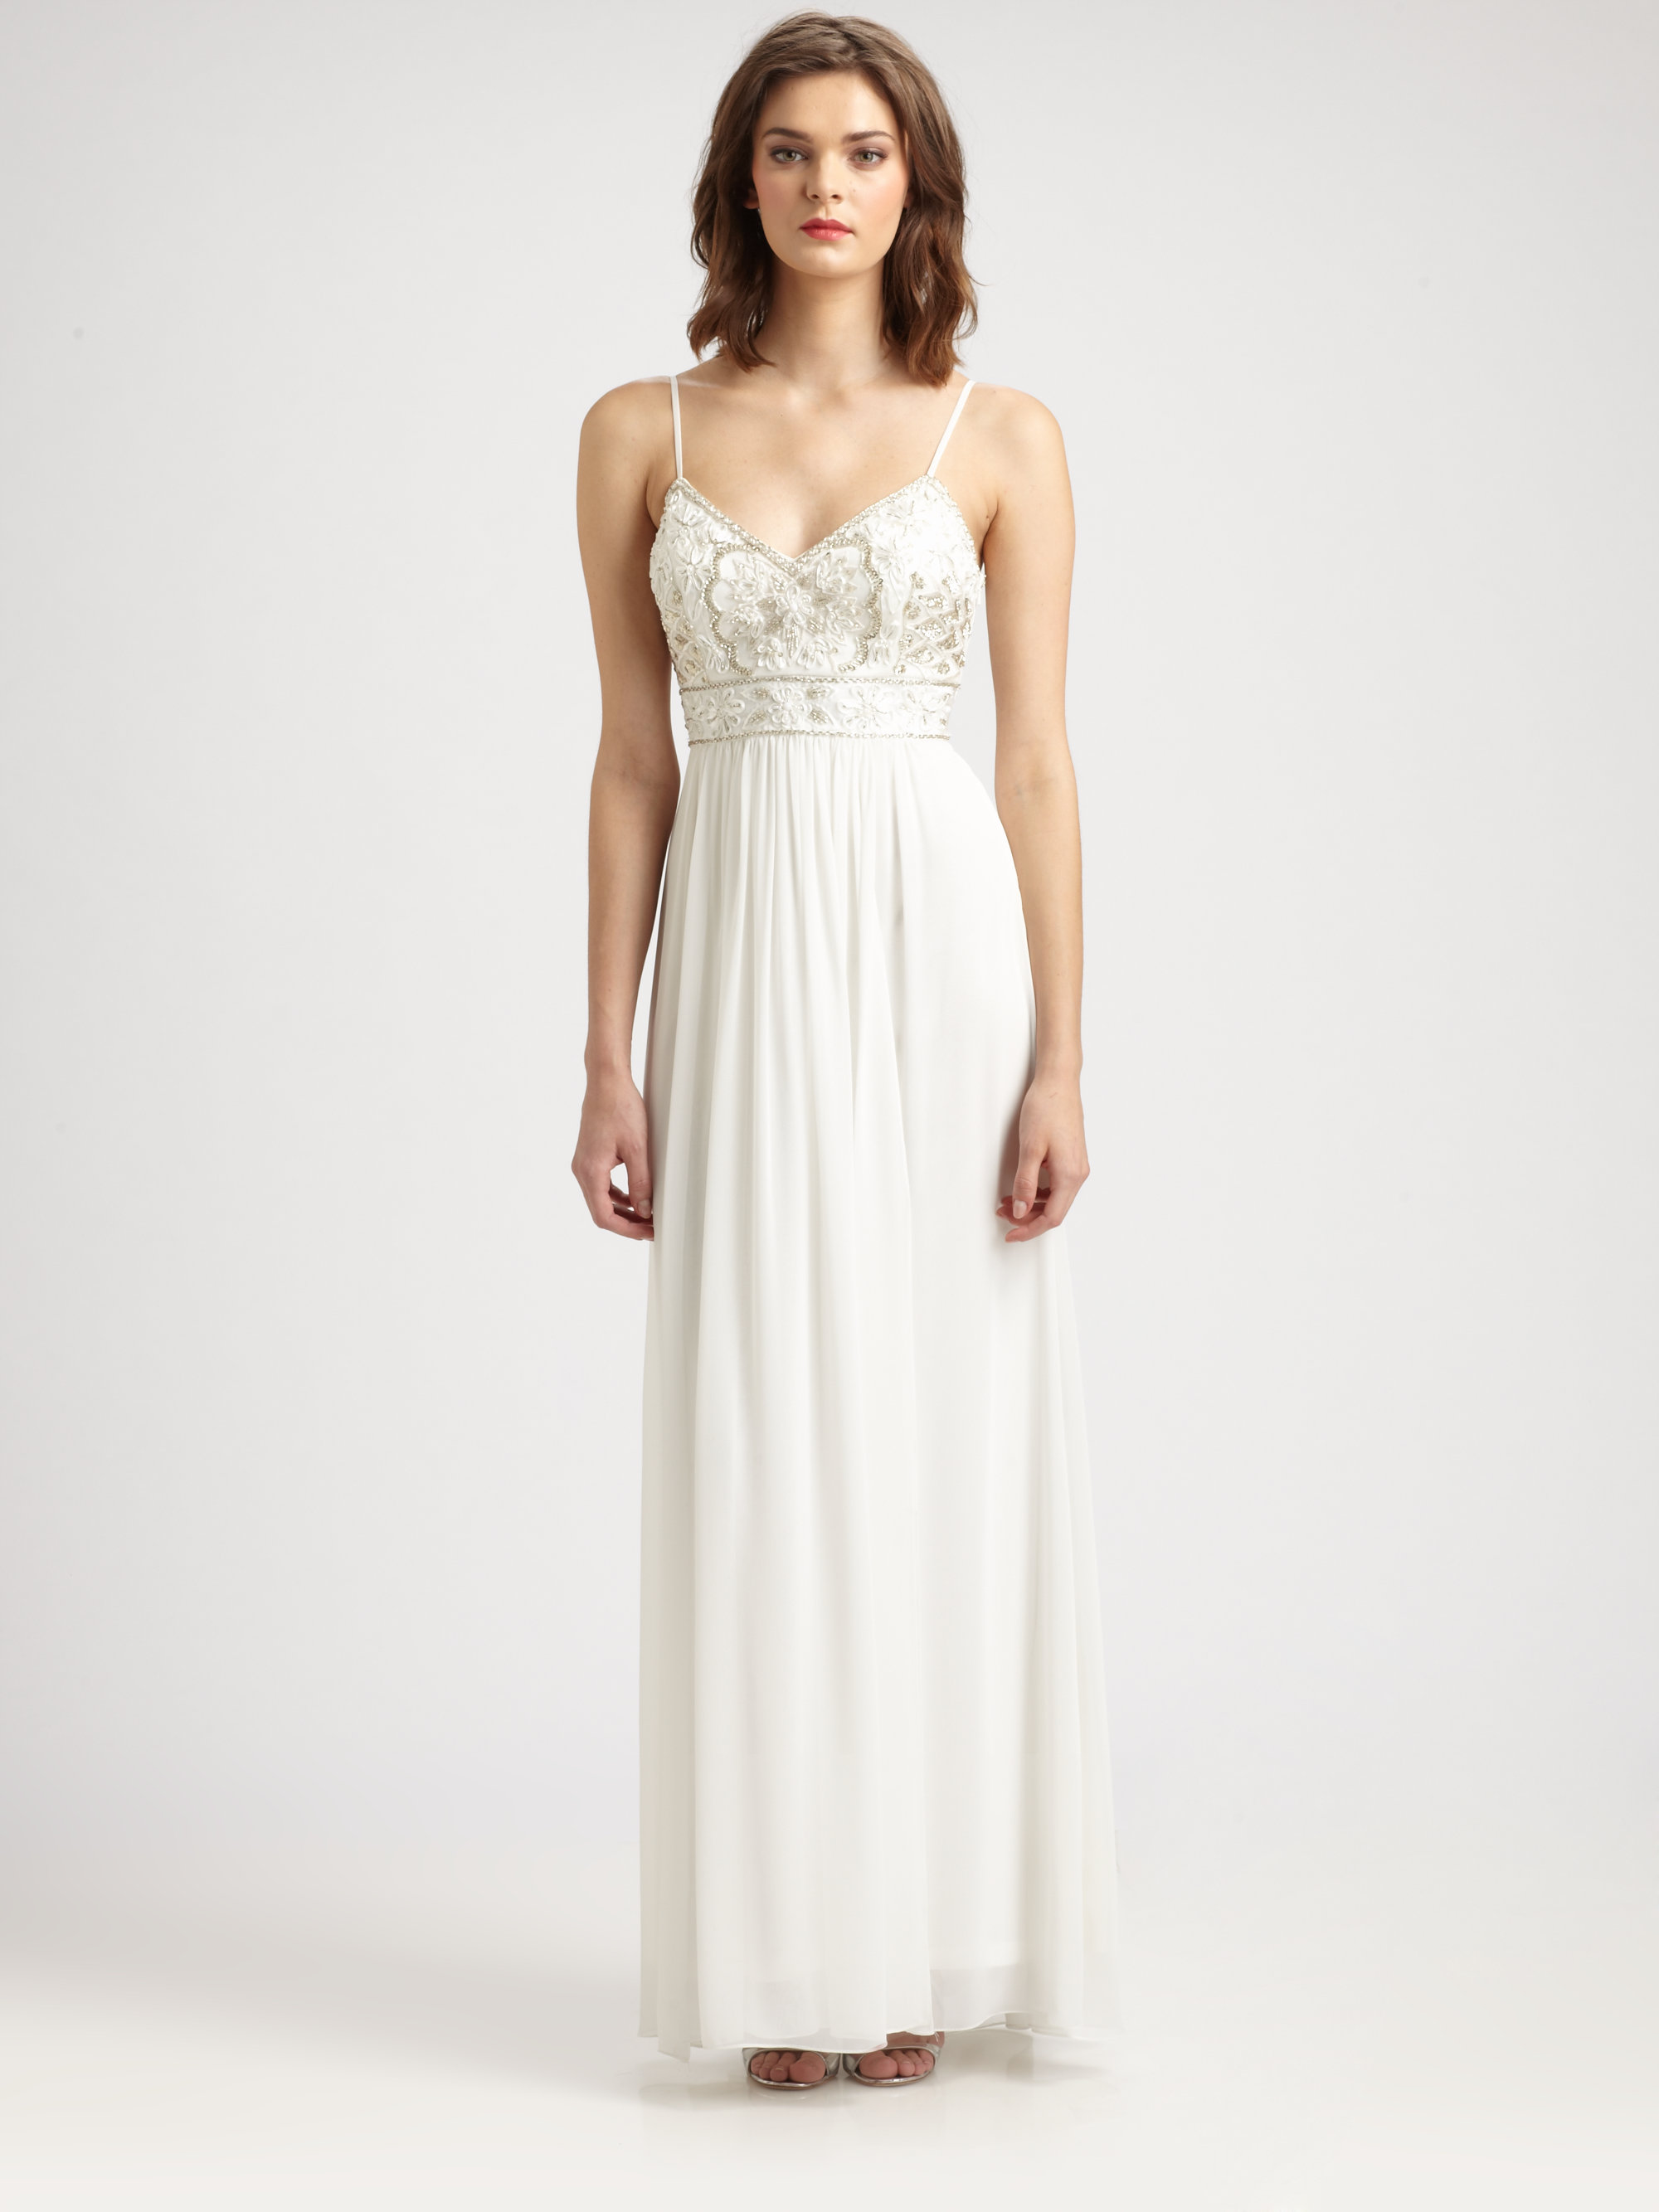 Sue wong Beaded Maxi Dress in White - Lyst